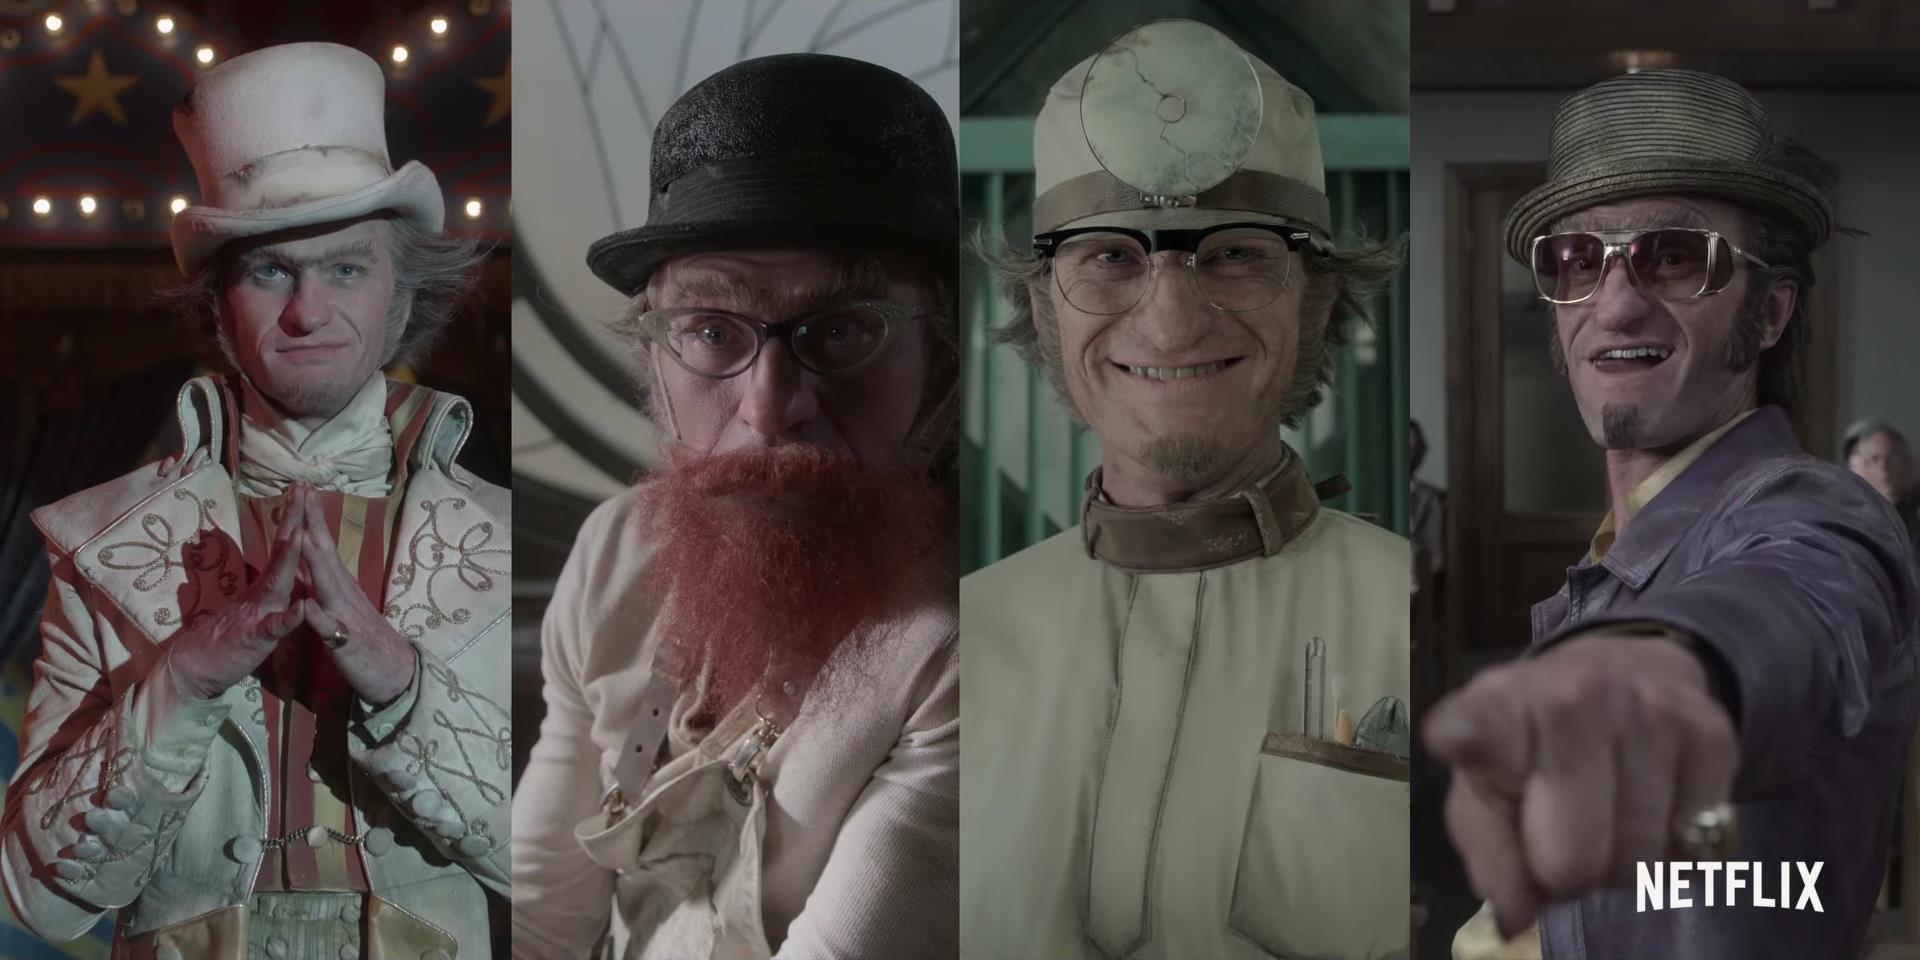 A Series of Unfortunate Events Season 2 Trailer Promises More Bad Times